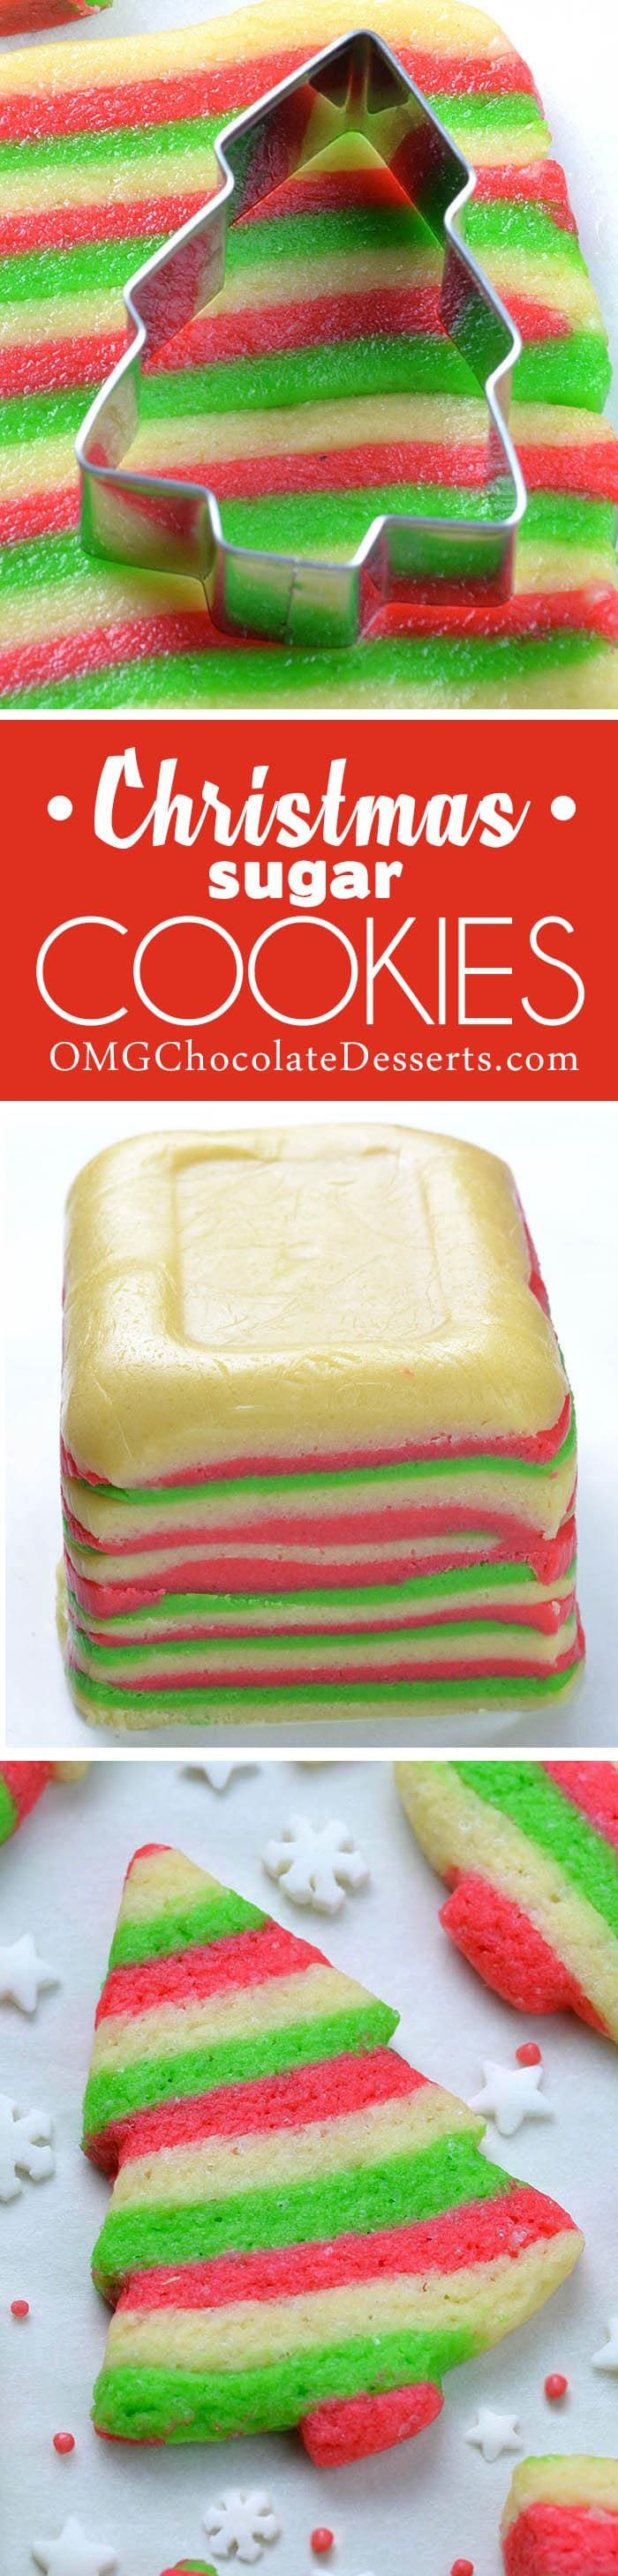 Christmas Sugar Cookies are classic dessert. But, these cute, red, white and green  striped Christmas tree cookies will make your holiday season merry and bright!!!